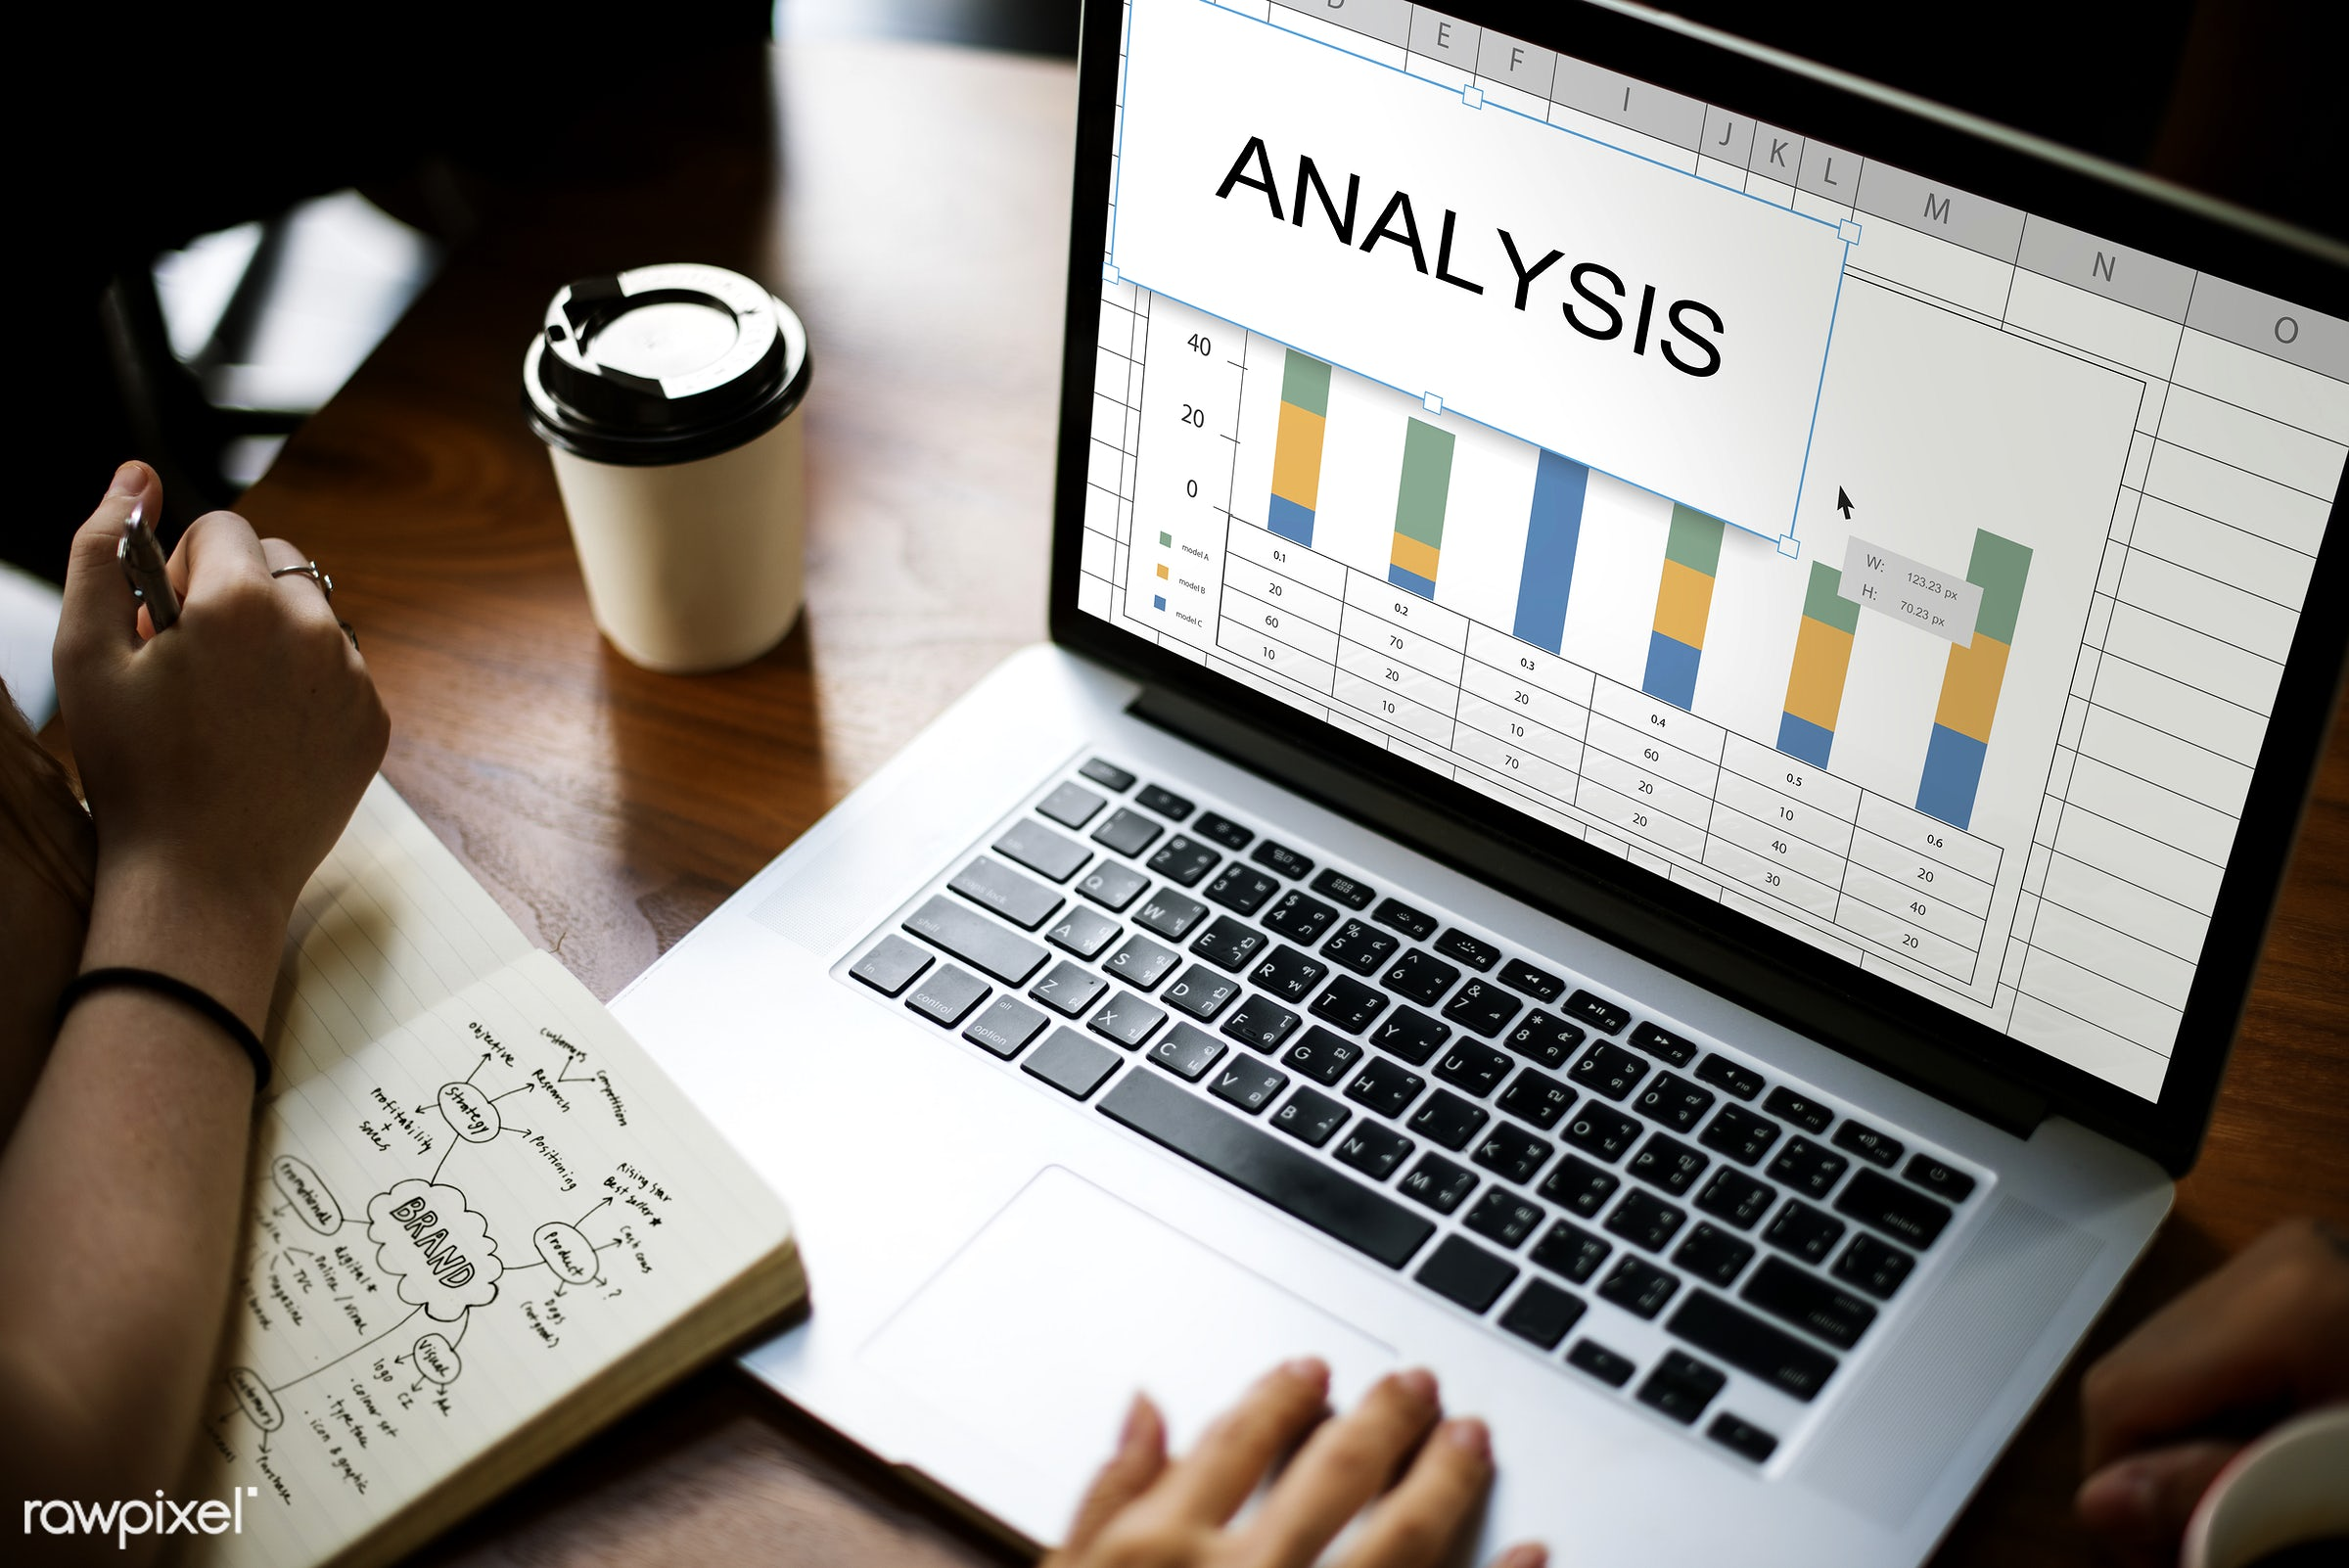 evaluation, solution, analysis, assessment, browsing, business, chart, coffee cup, development, device, digital, digital...